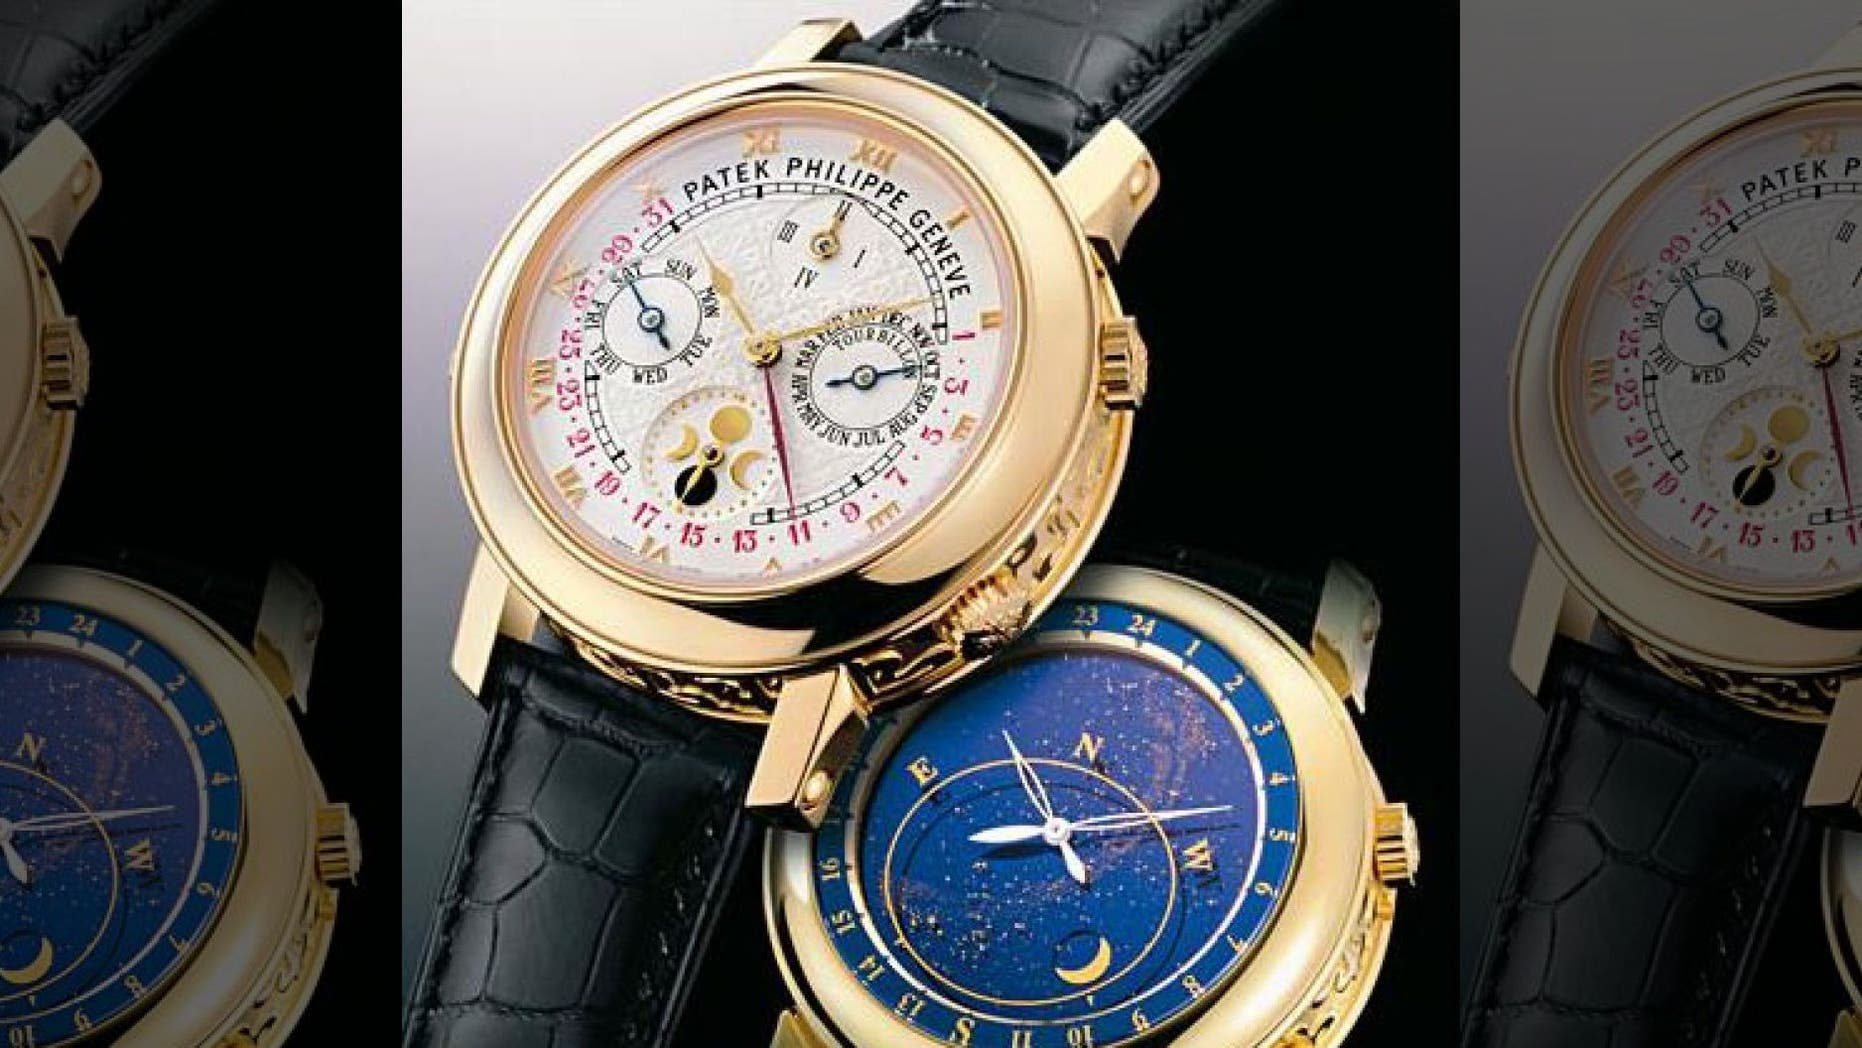 Authorities are searching for men who reportedly stole a $95,000 Patek Philippe watch, similar to the ones seen here.